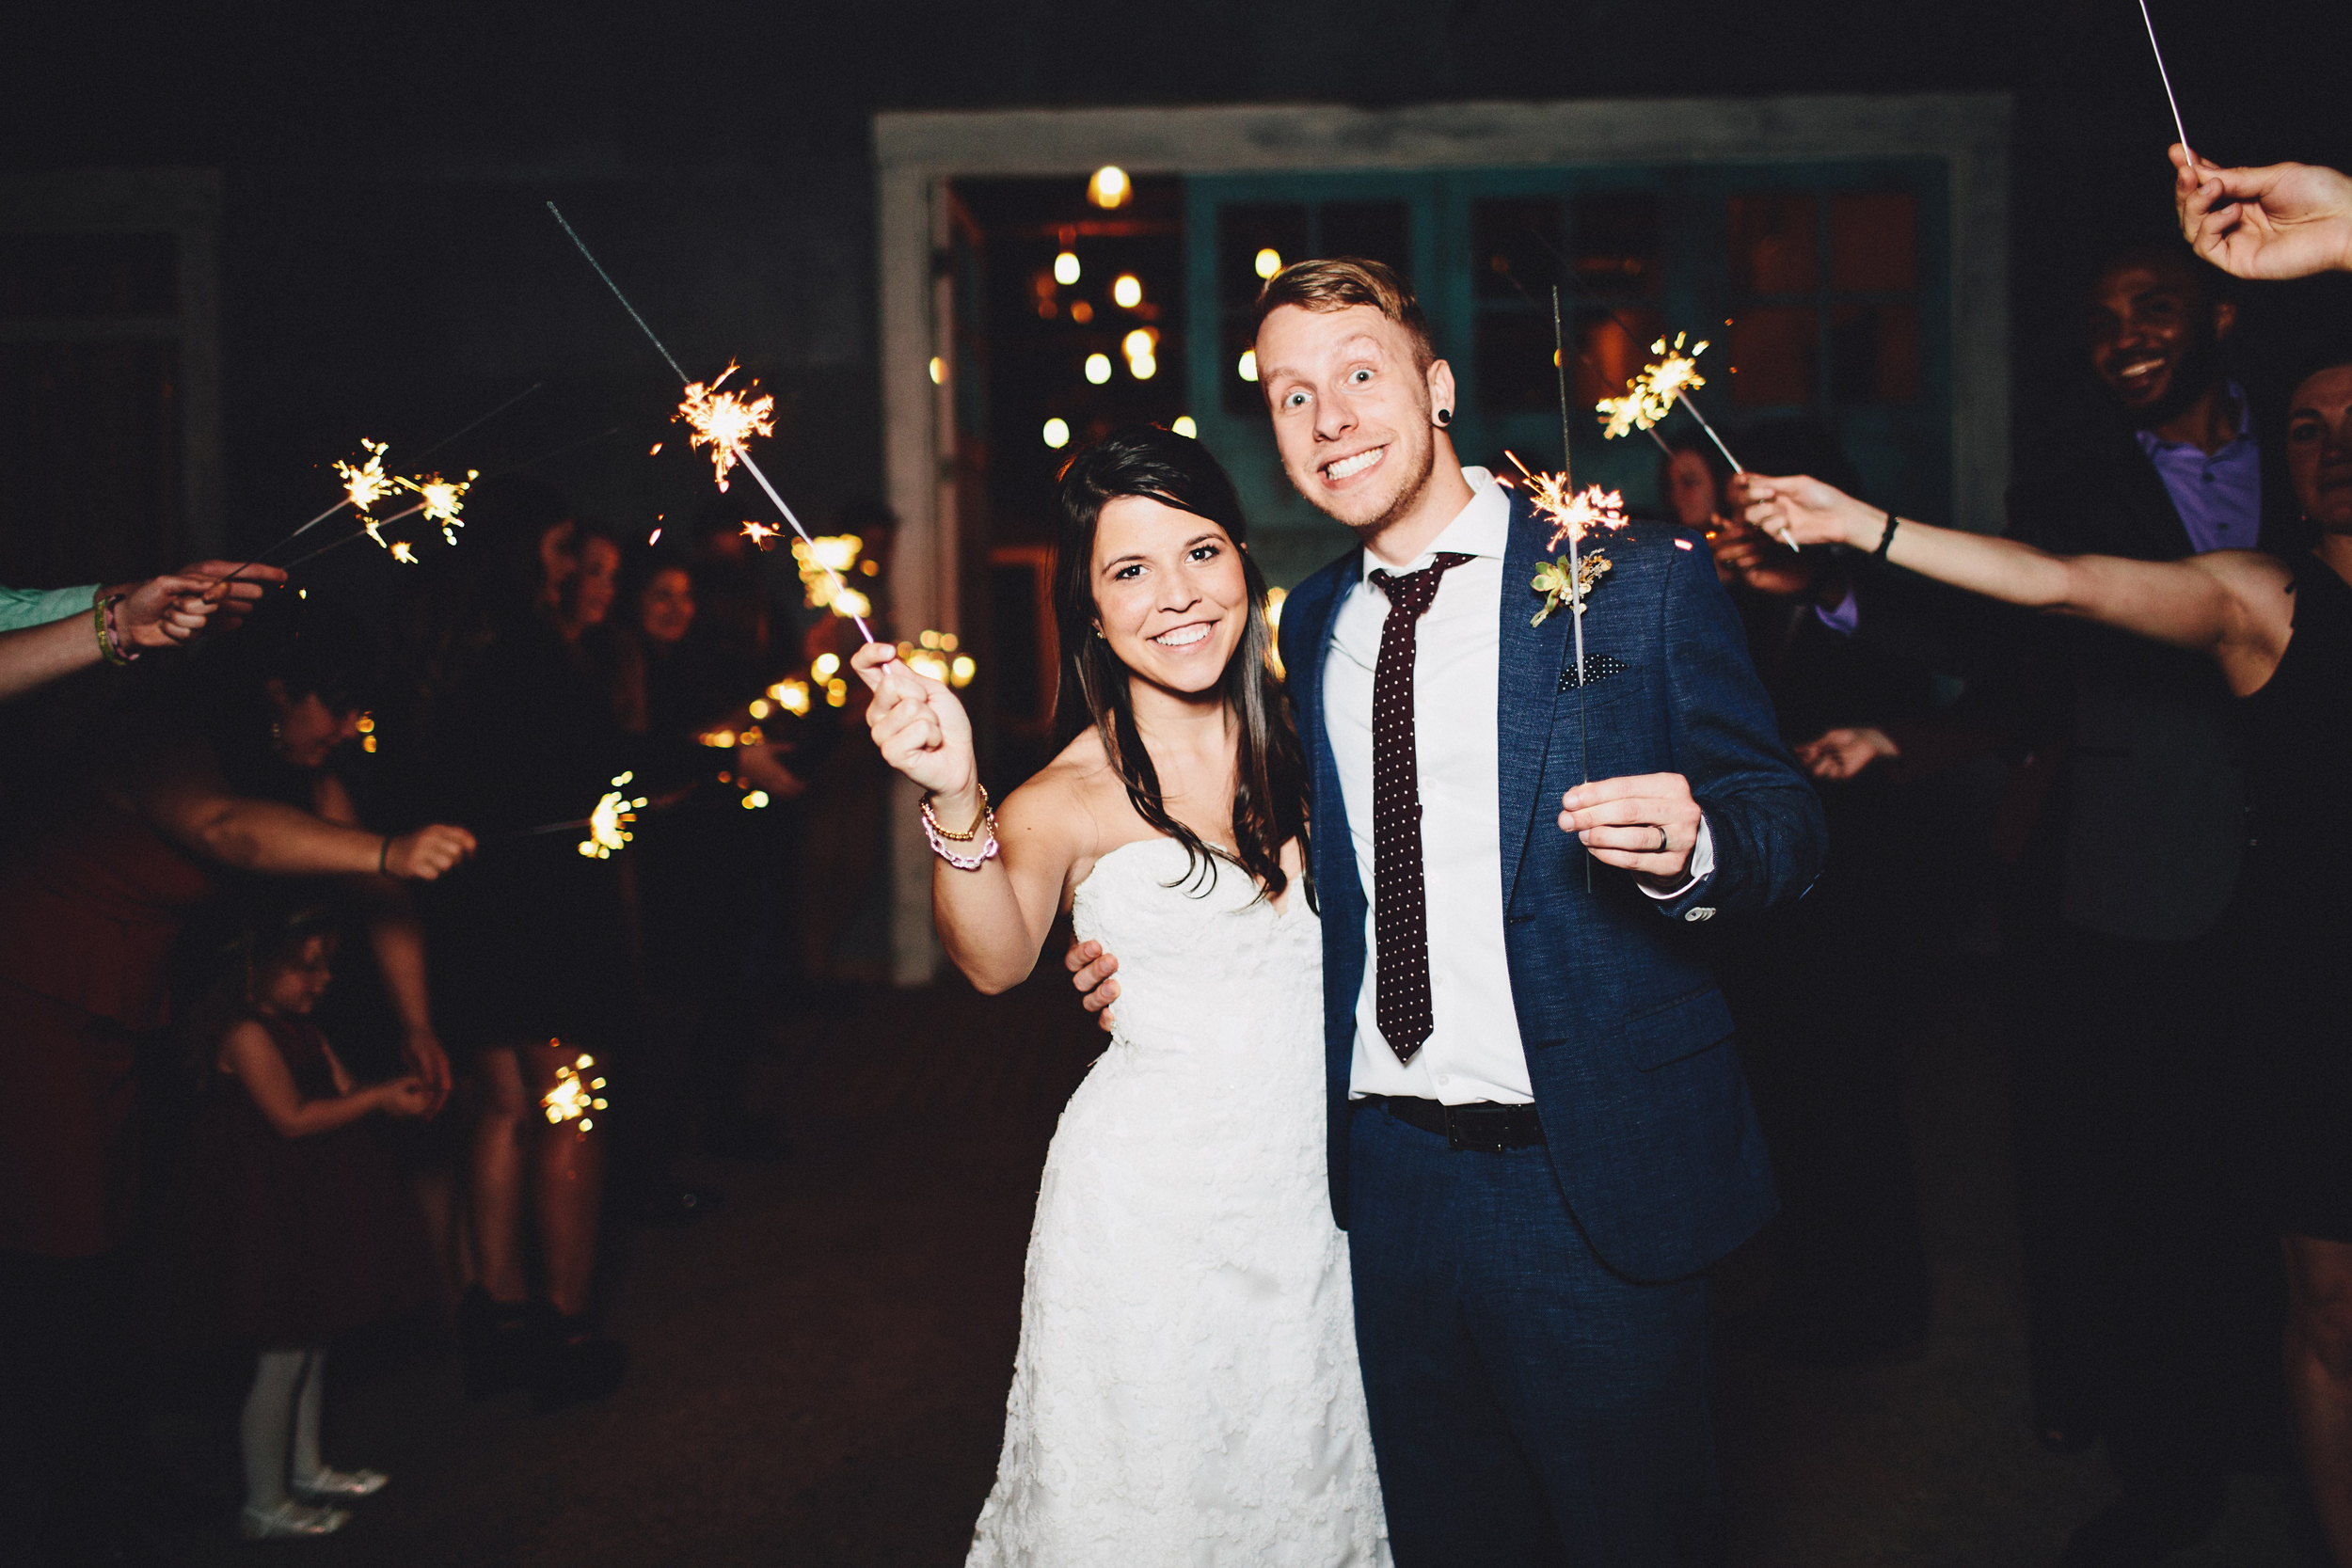 the union on eighth sparkler bride and groom